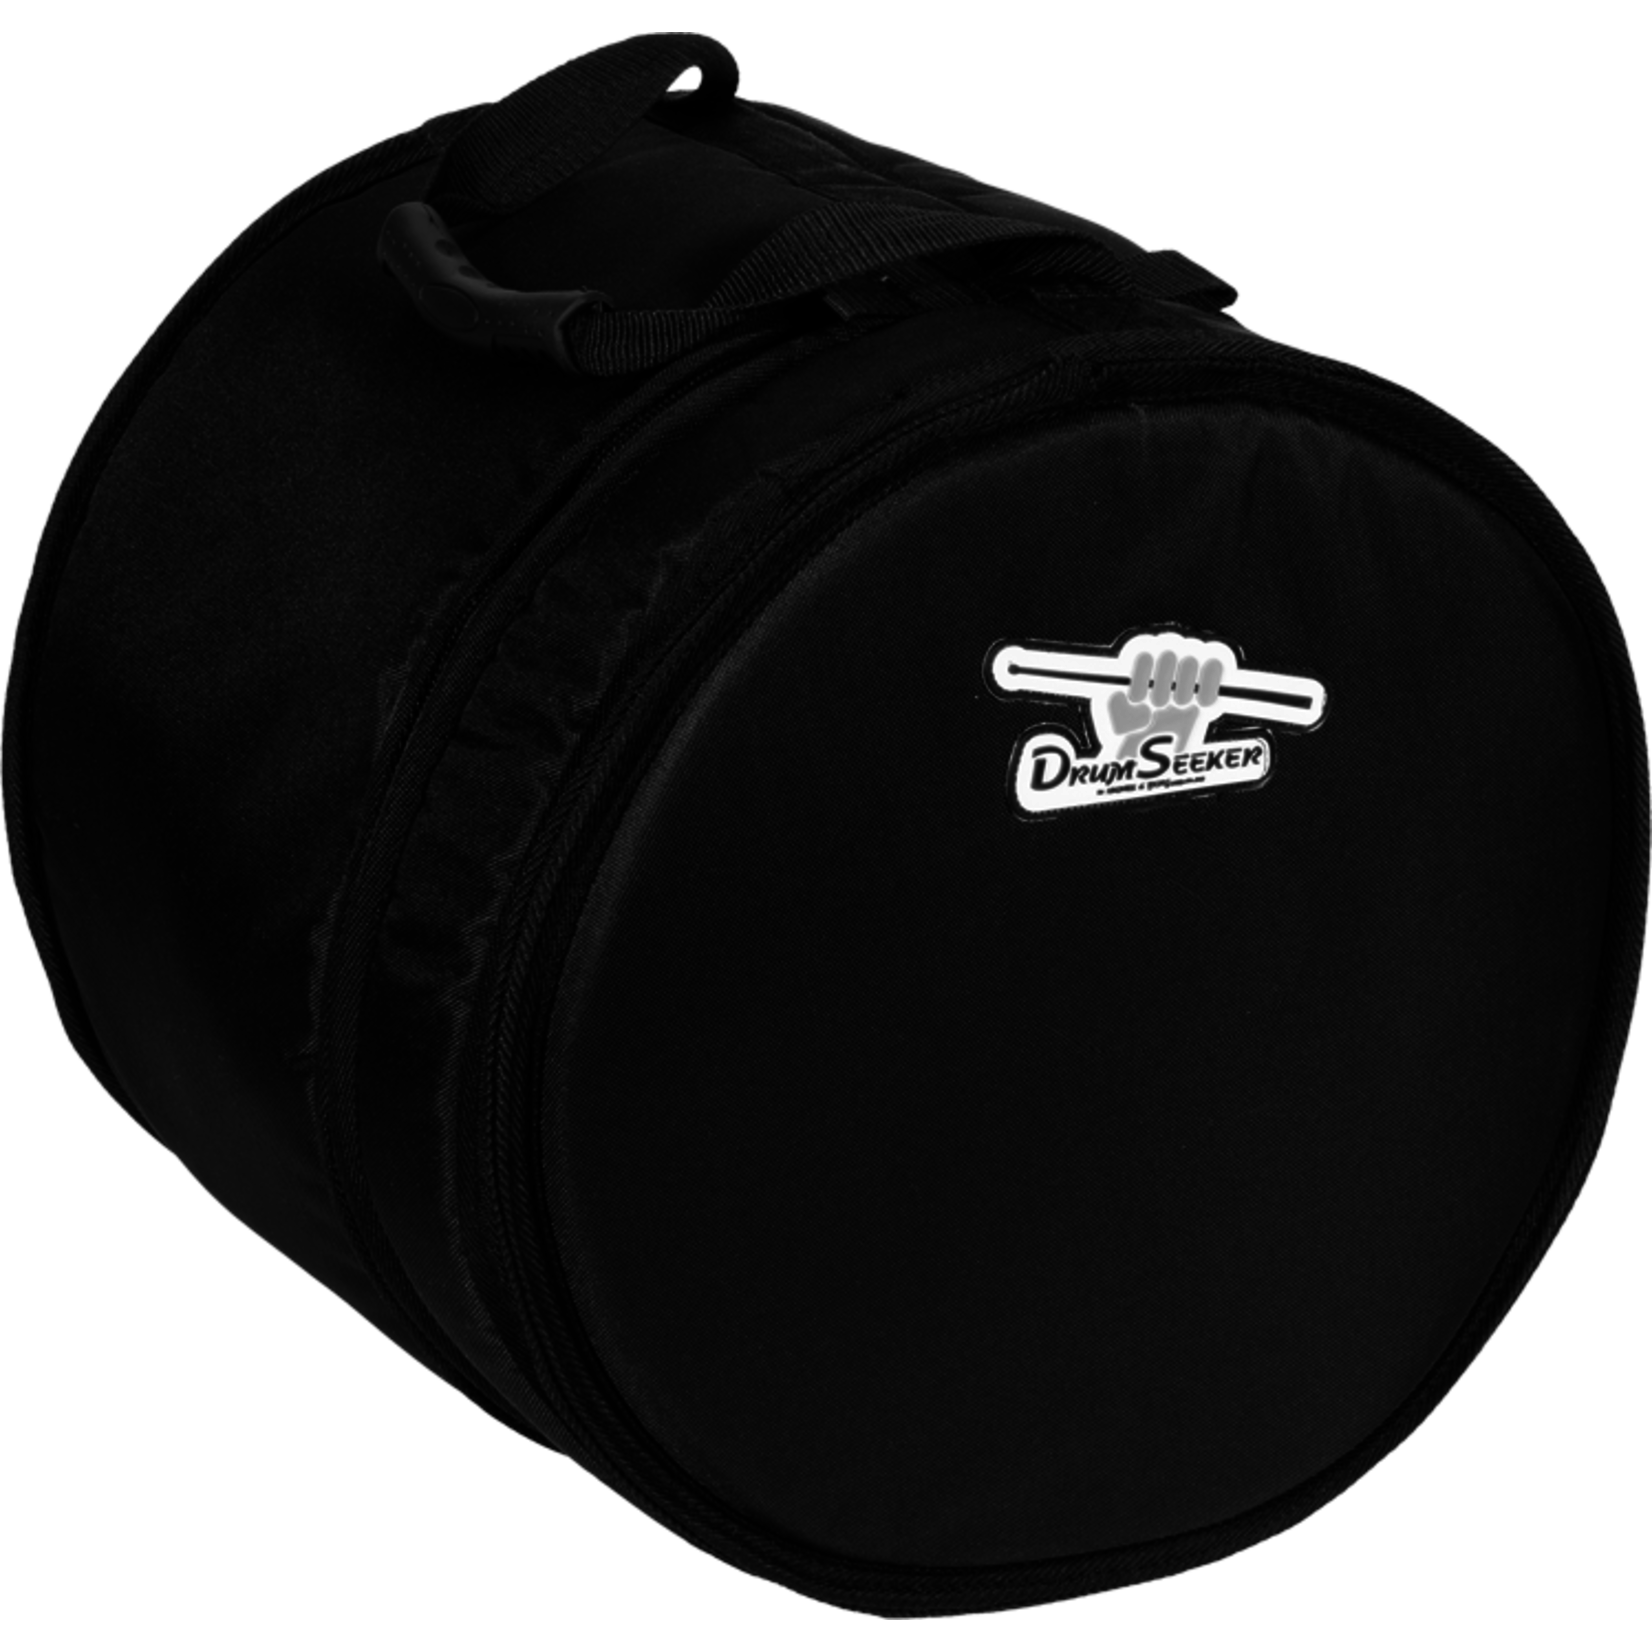 Humes and Berg Humes and Berg Drum Seeker 9x13 Bag